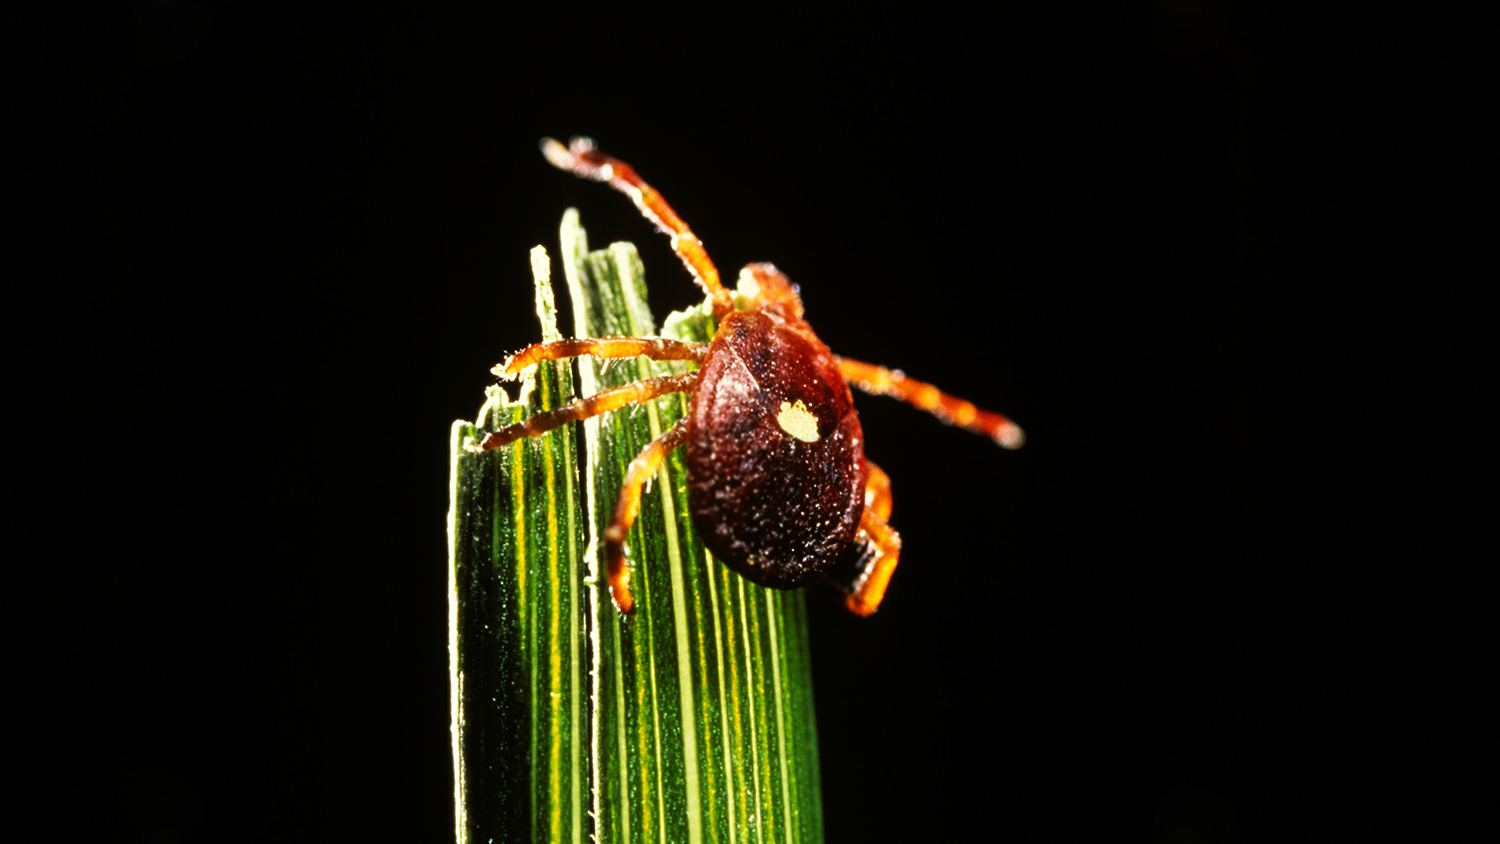 the lone star tick causes meat allergy